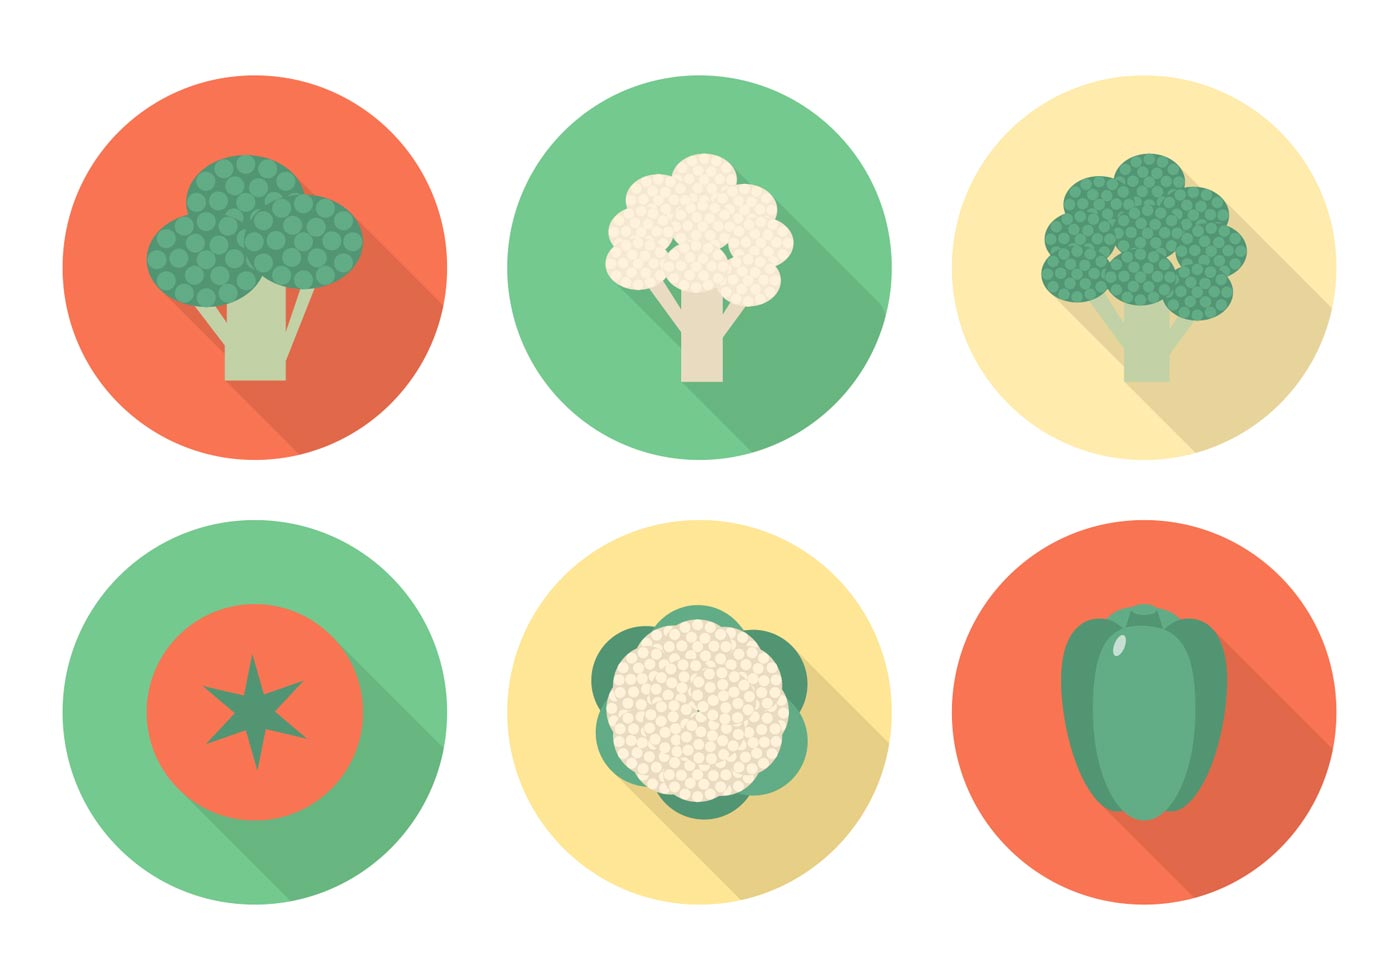 Free Flat Vegetables Vector Icons - Download Free Vector ...